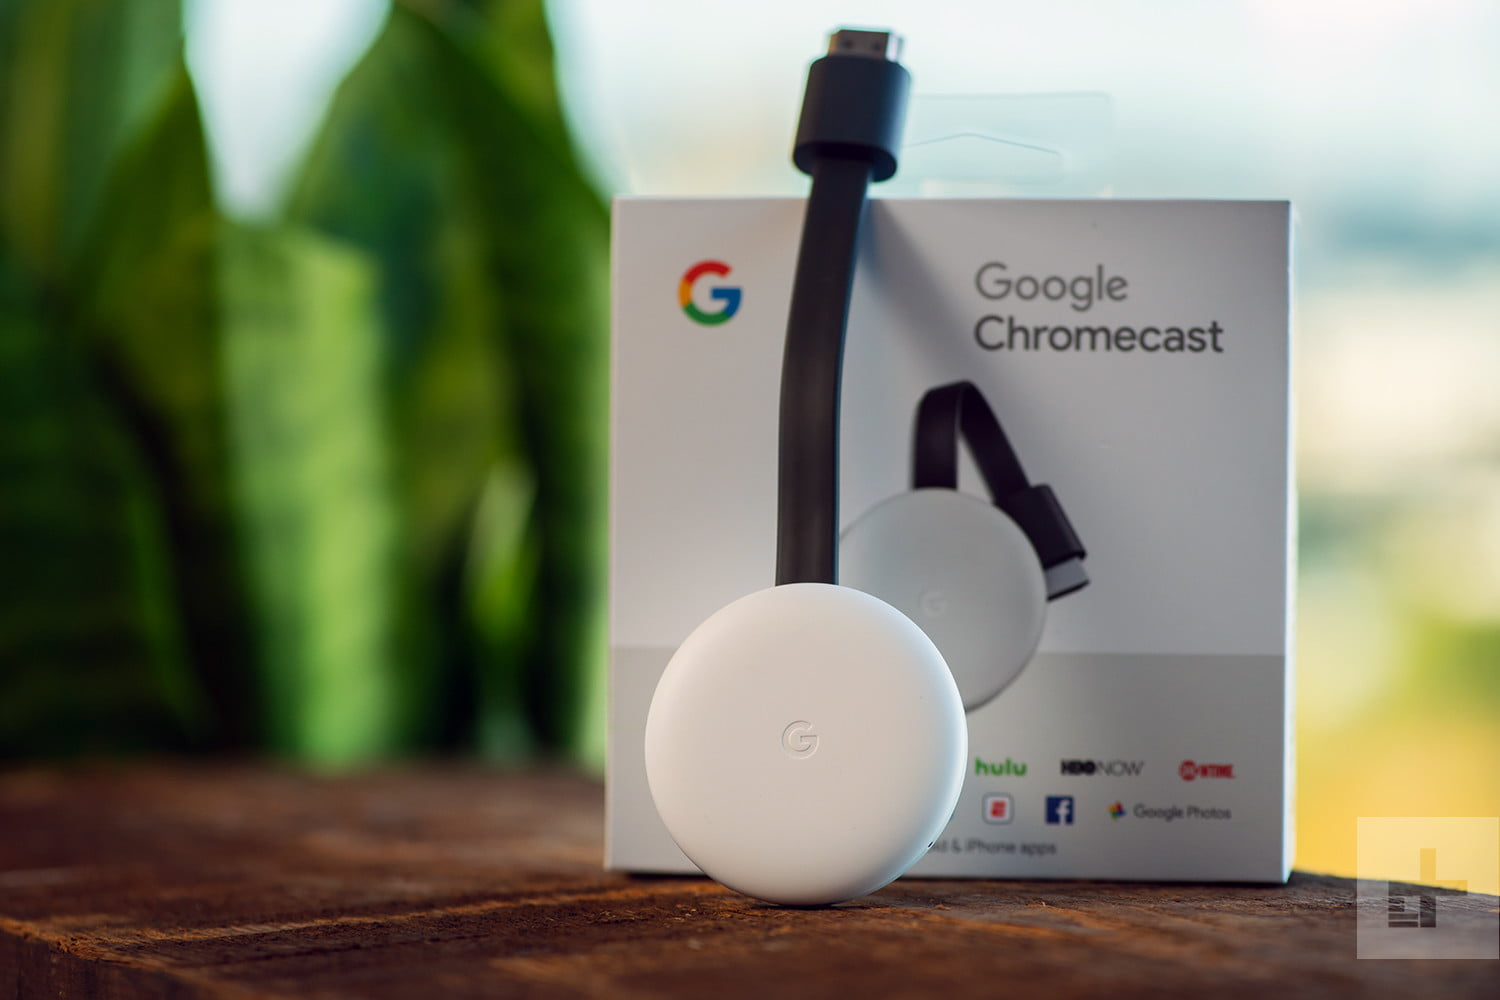 Google continues to ignore the Chromecast, the best product it ever made